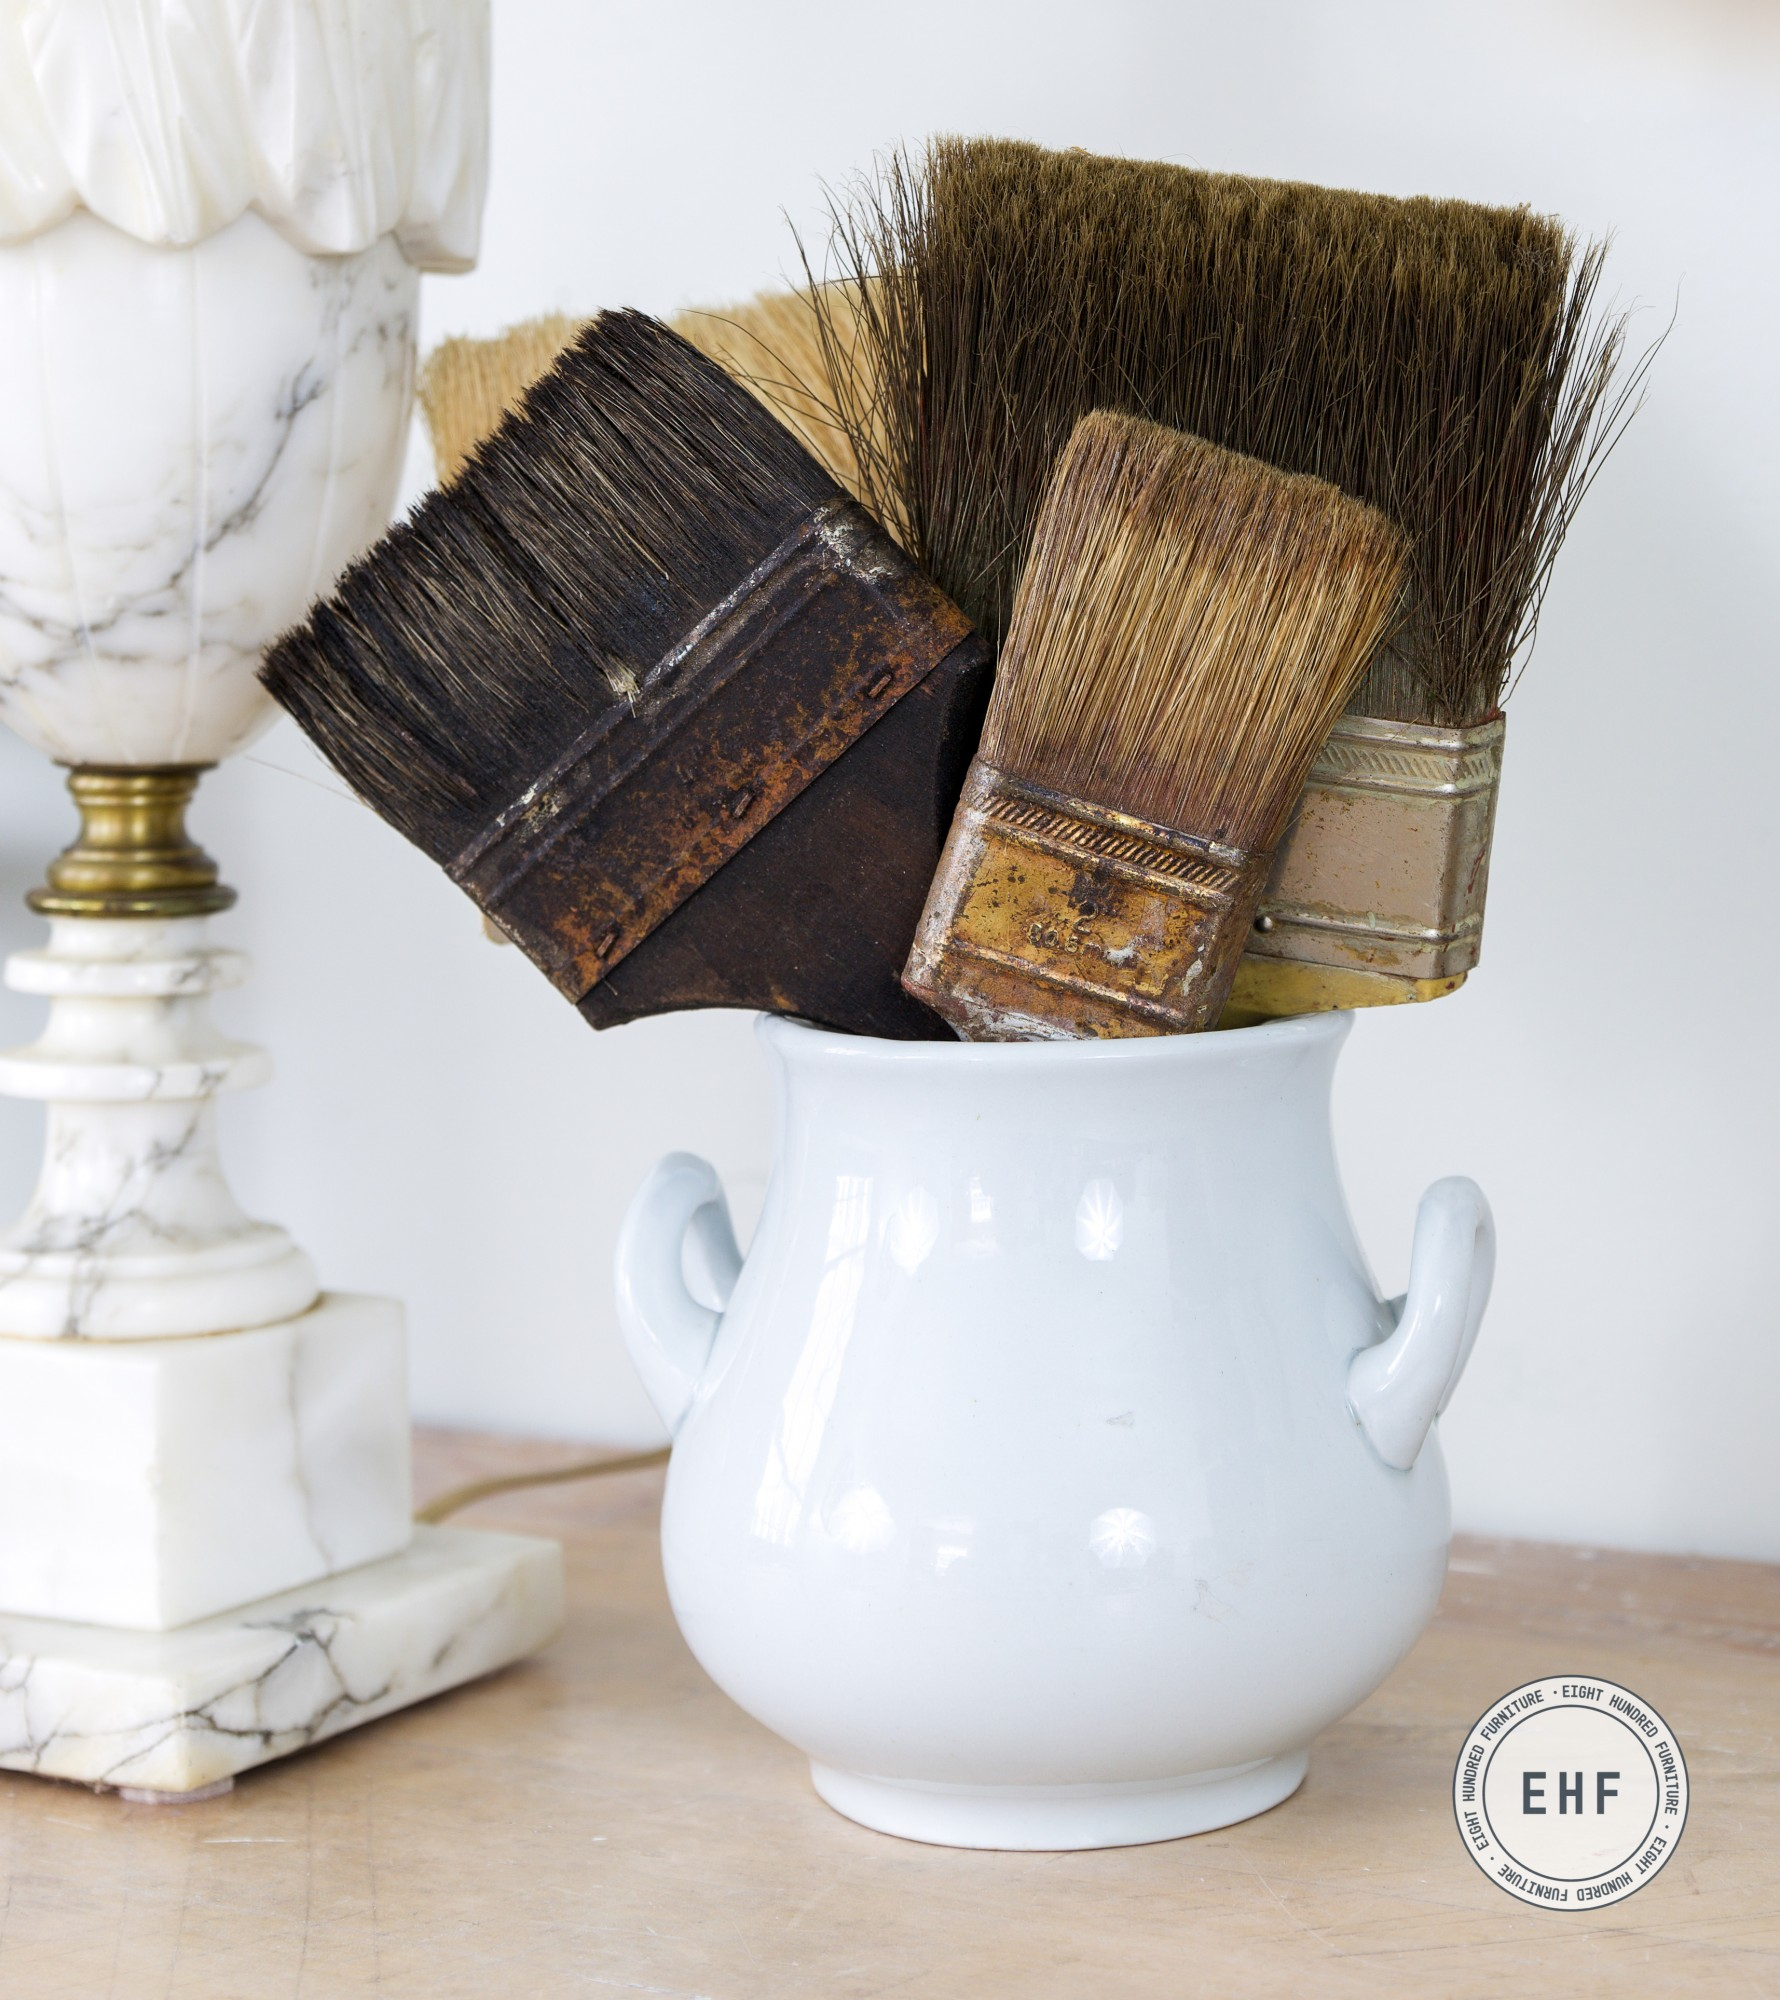 Old paint brushes in an ironstone sugar jar